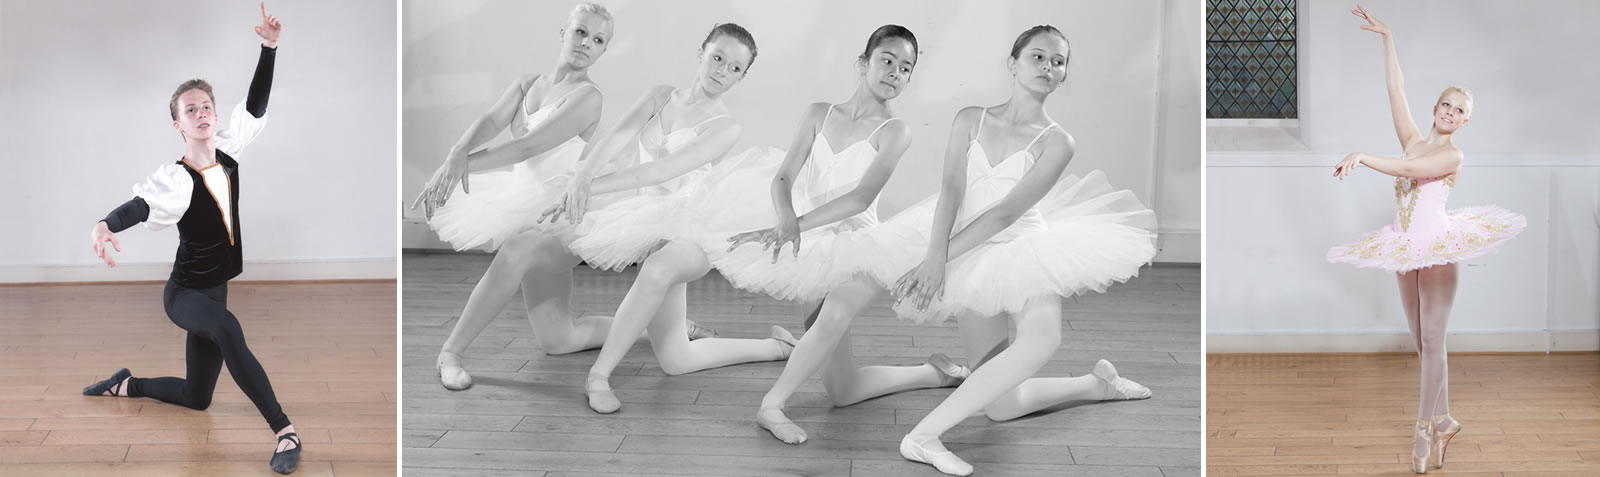 Vocational and adult ballet students practicing at our studios in Old Harlow, Essex